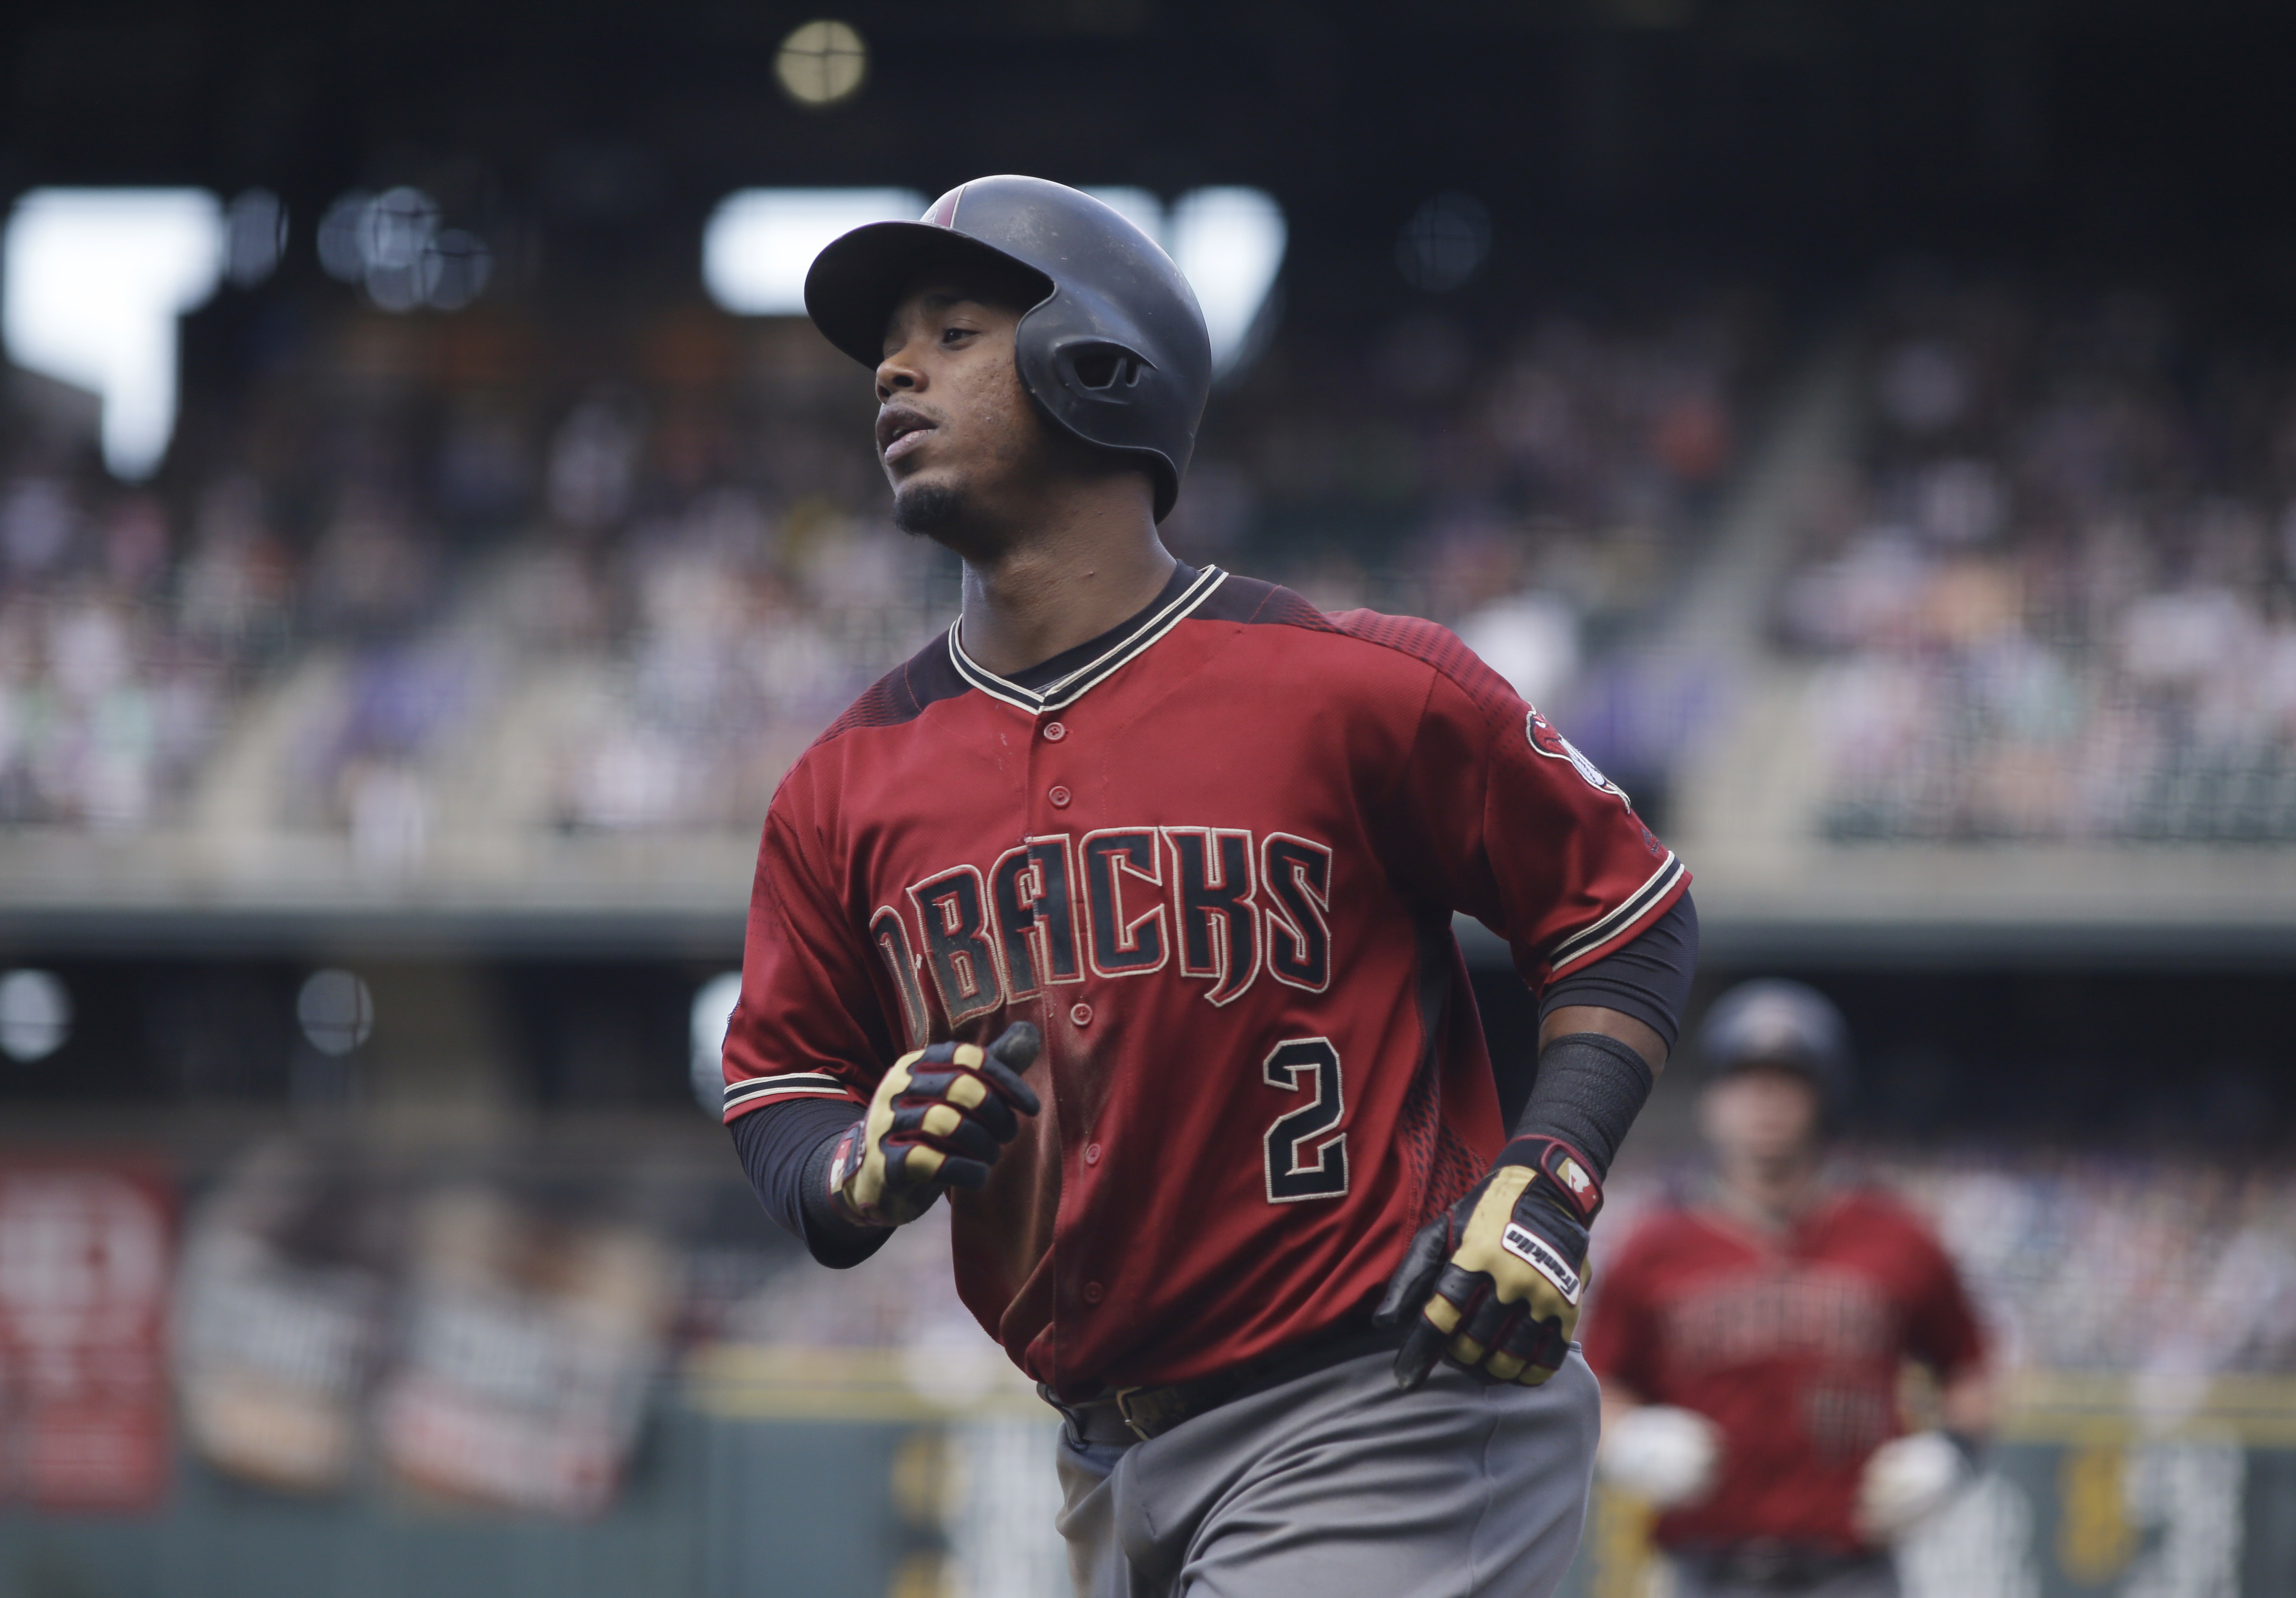 FILE - In this Sept. 4, 2016, file photo, Arizona Diamondbacks' Jean Segura heads back to the dugout after scoring against the Colorado Rockies in a baseball game in Denver. Seattle and Arizona pulled off a five-player trade Wednesday night, Nov. 23, with